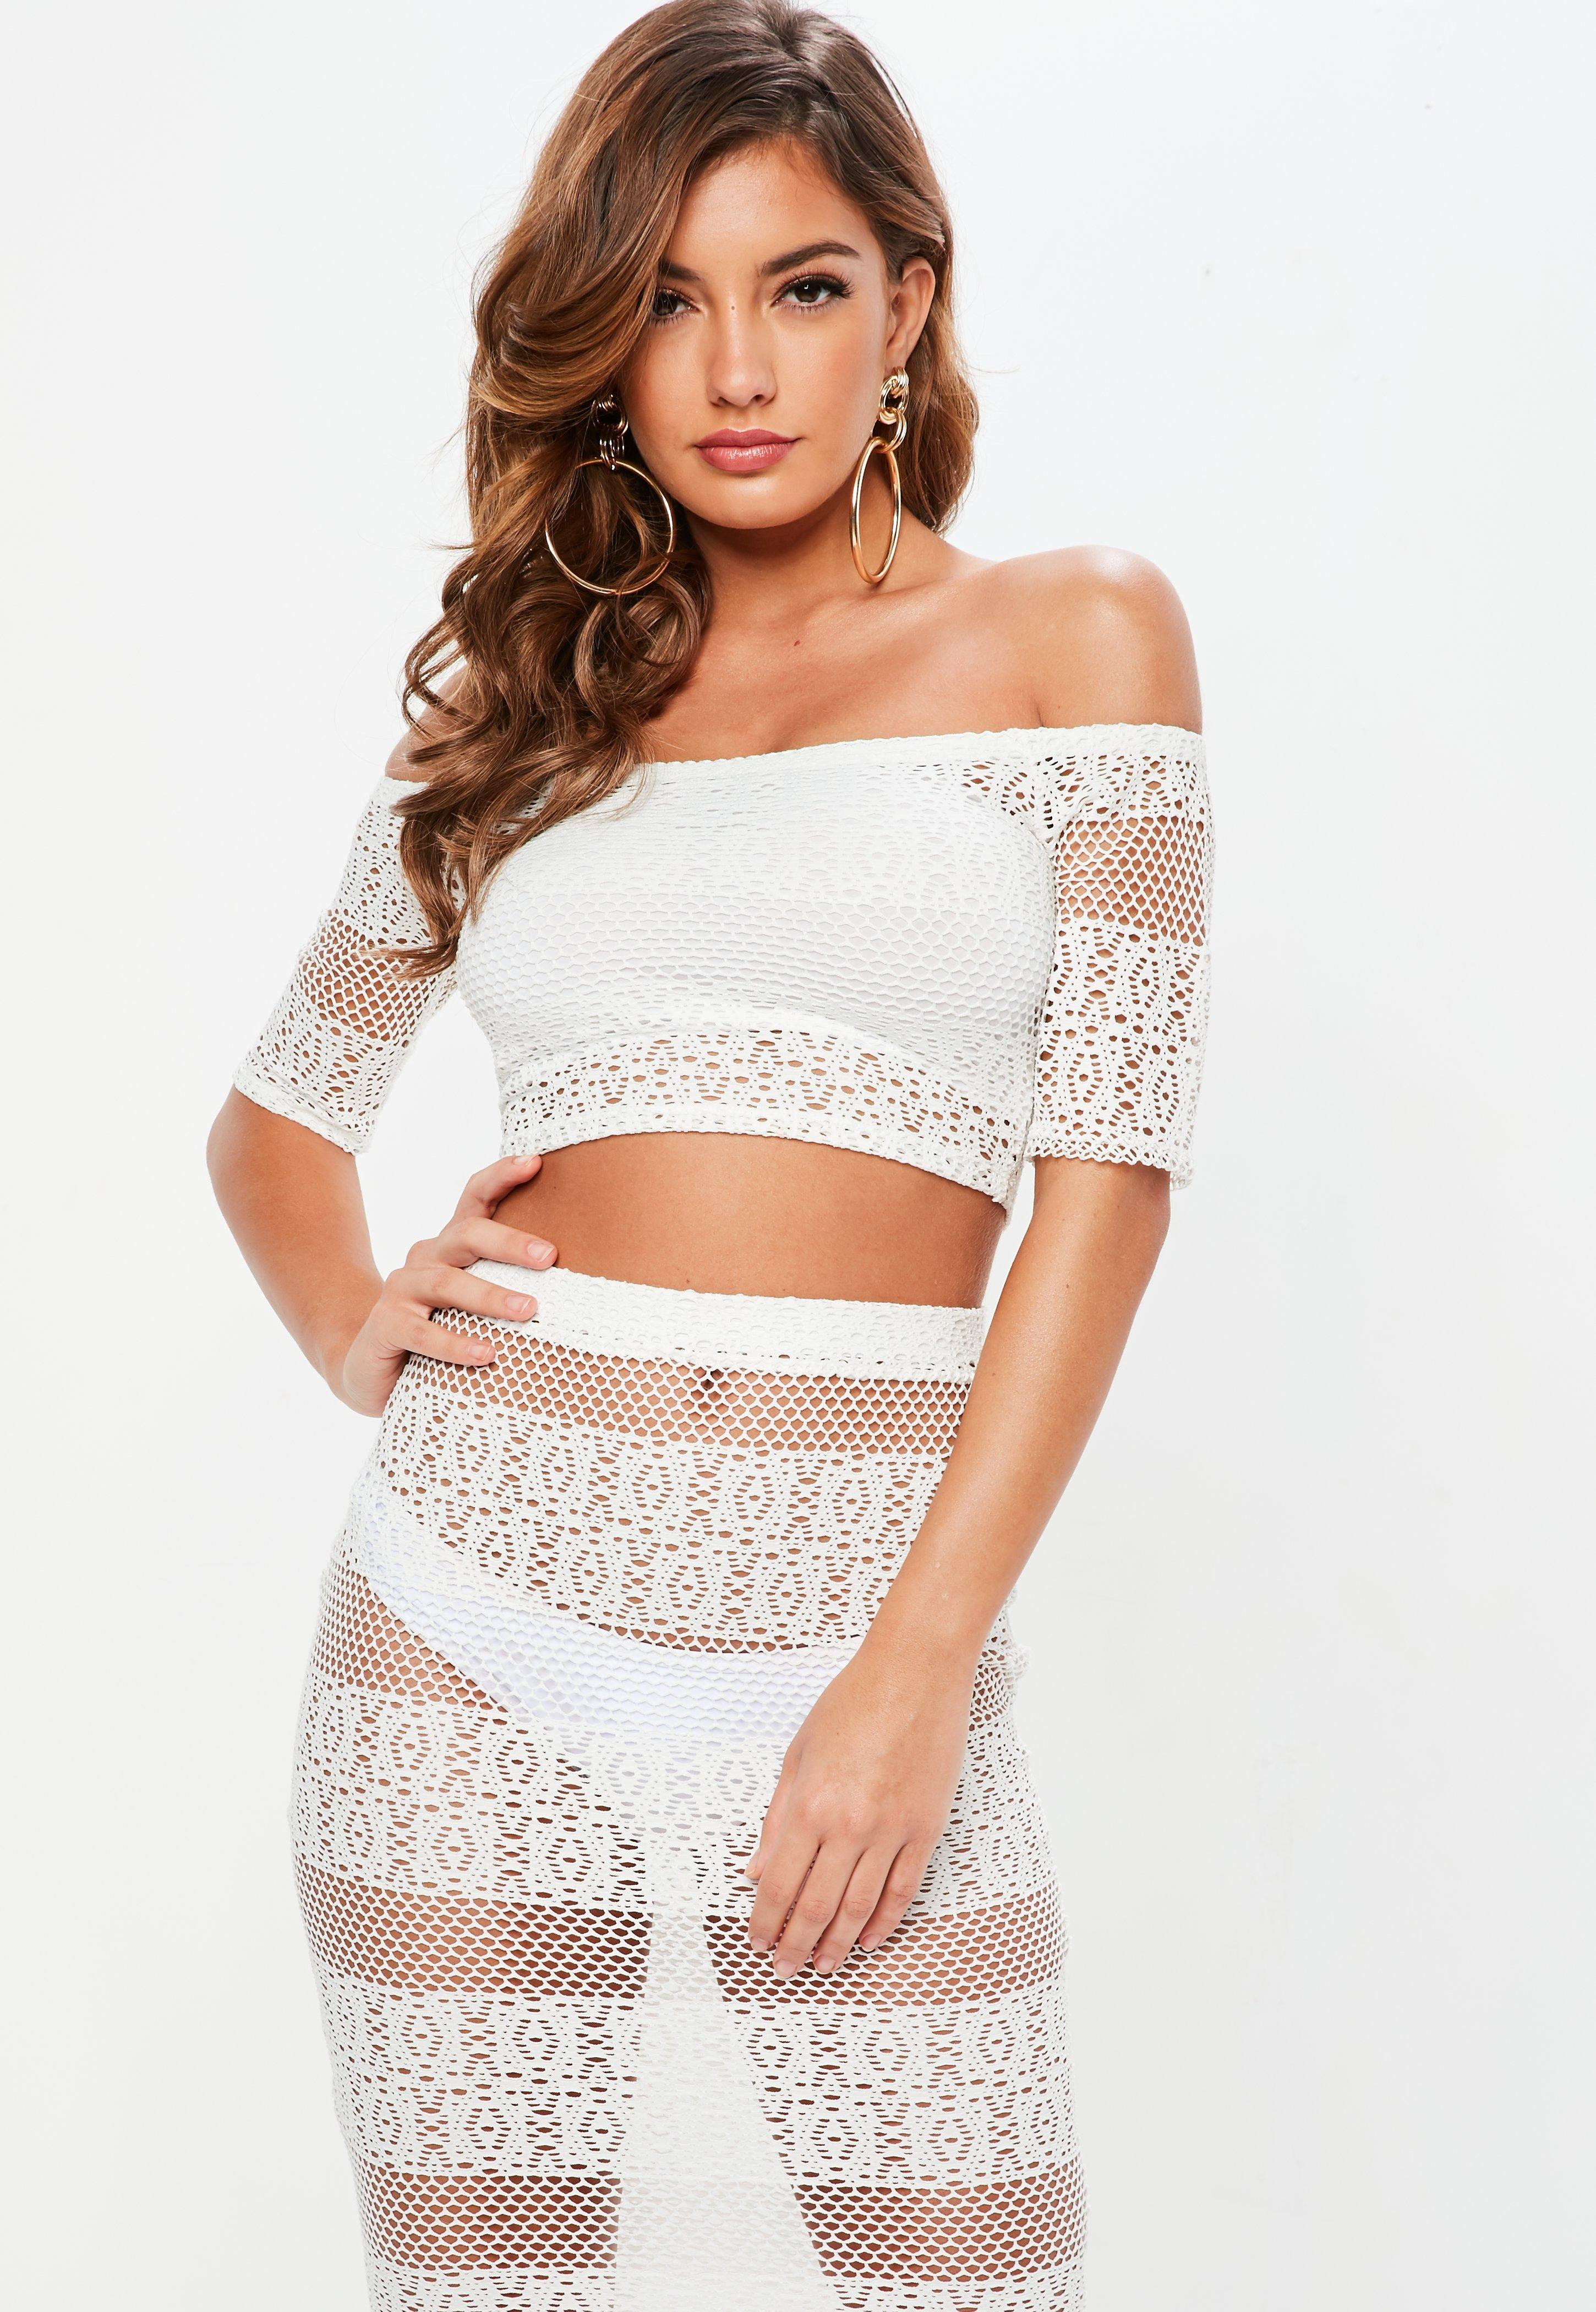 0db661726f916 Missguided Petite White Crochet Bardot Top in White - Lyst